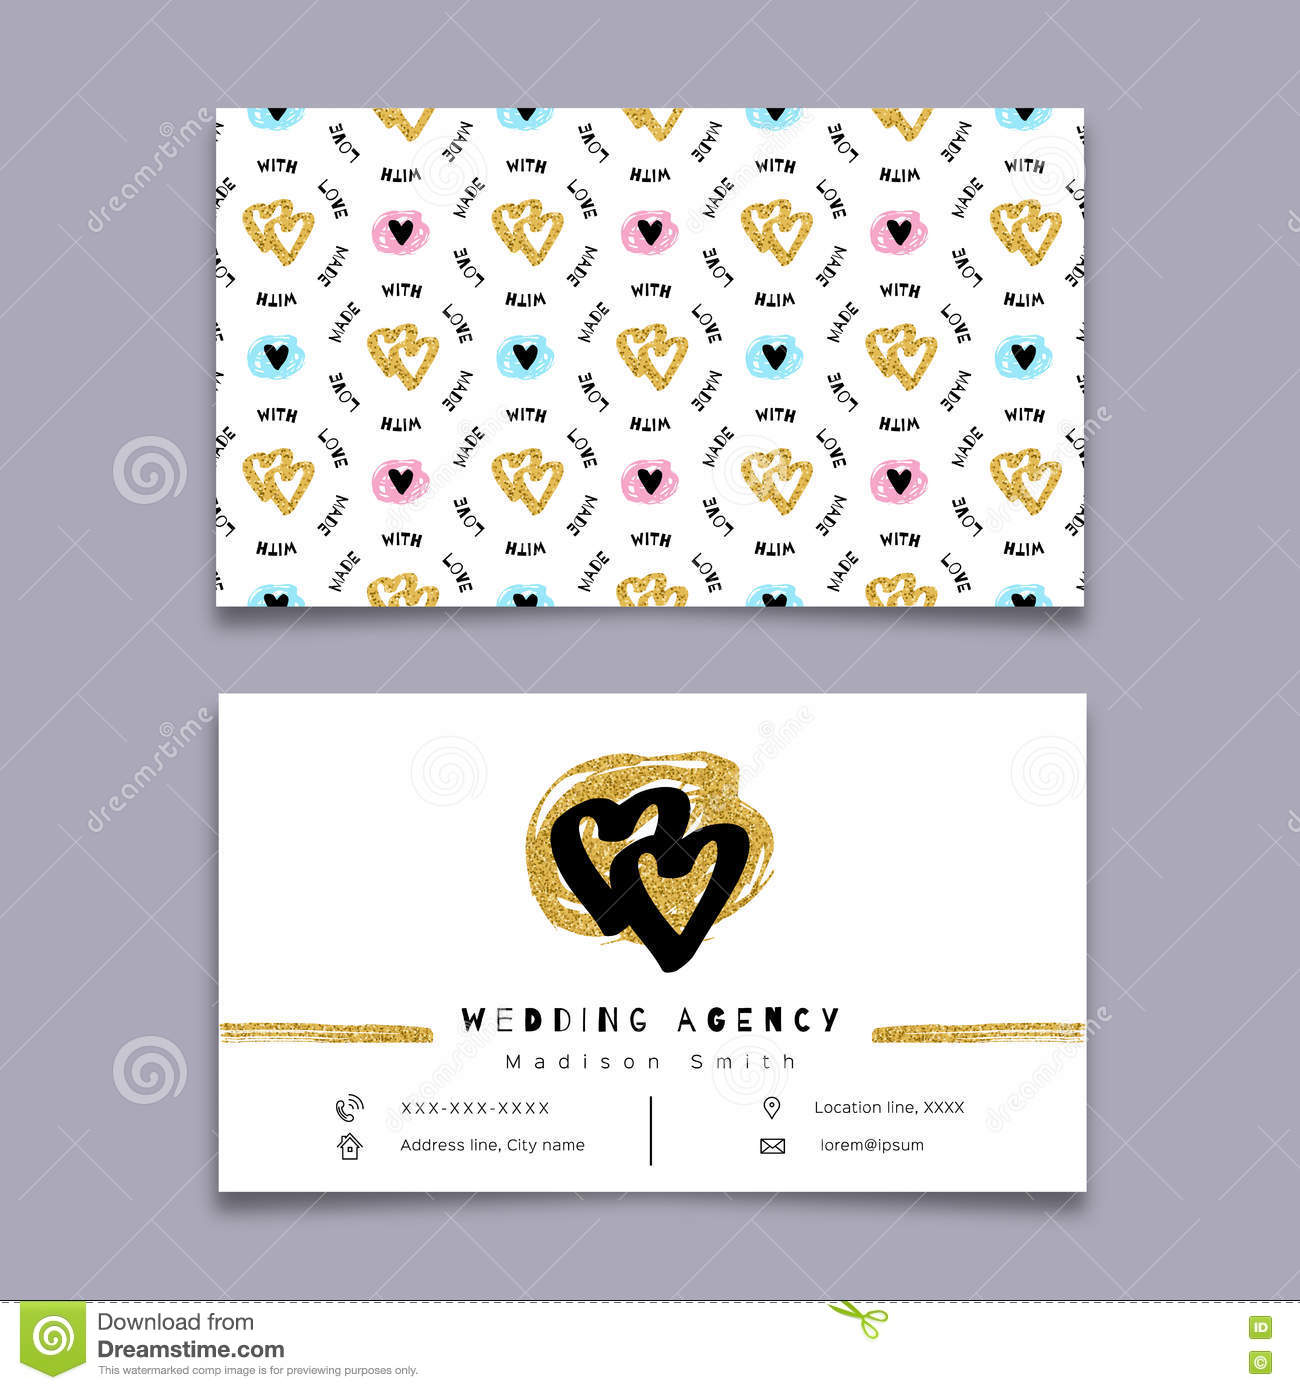 Wedding Agency Business Card Event Planner Celebrations